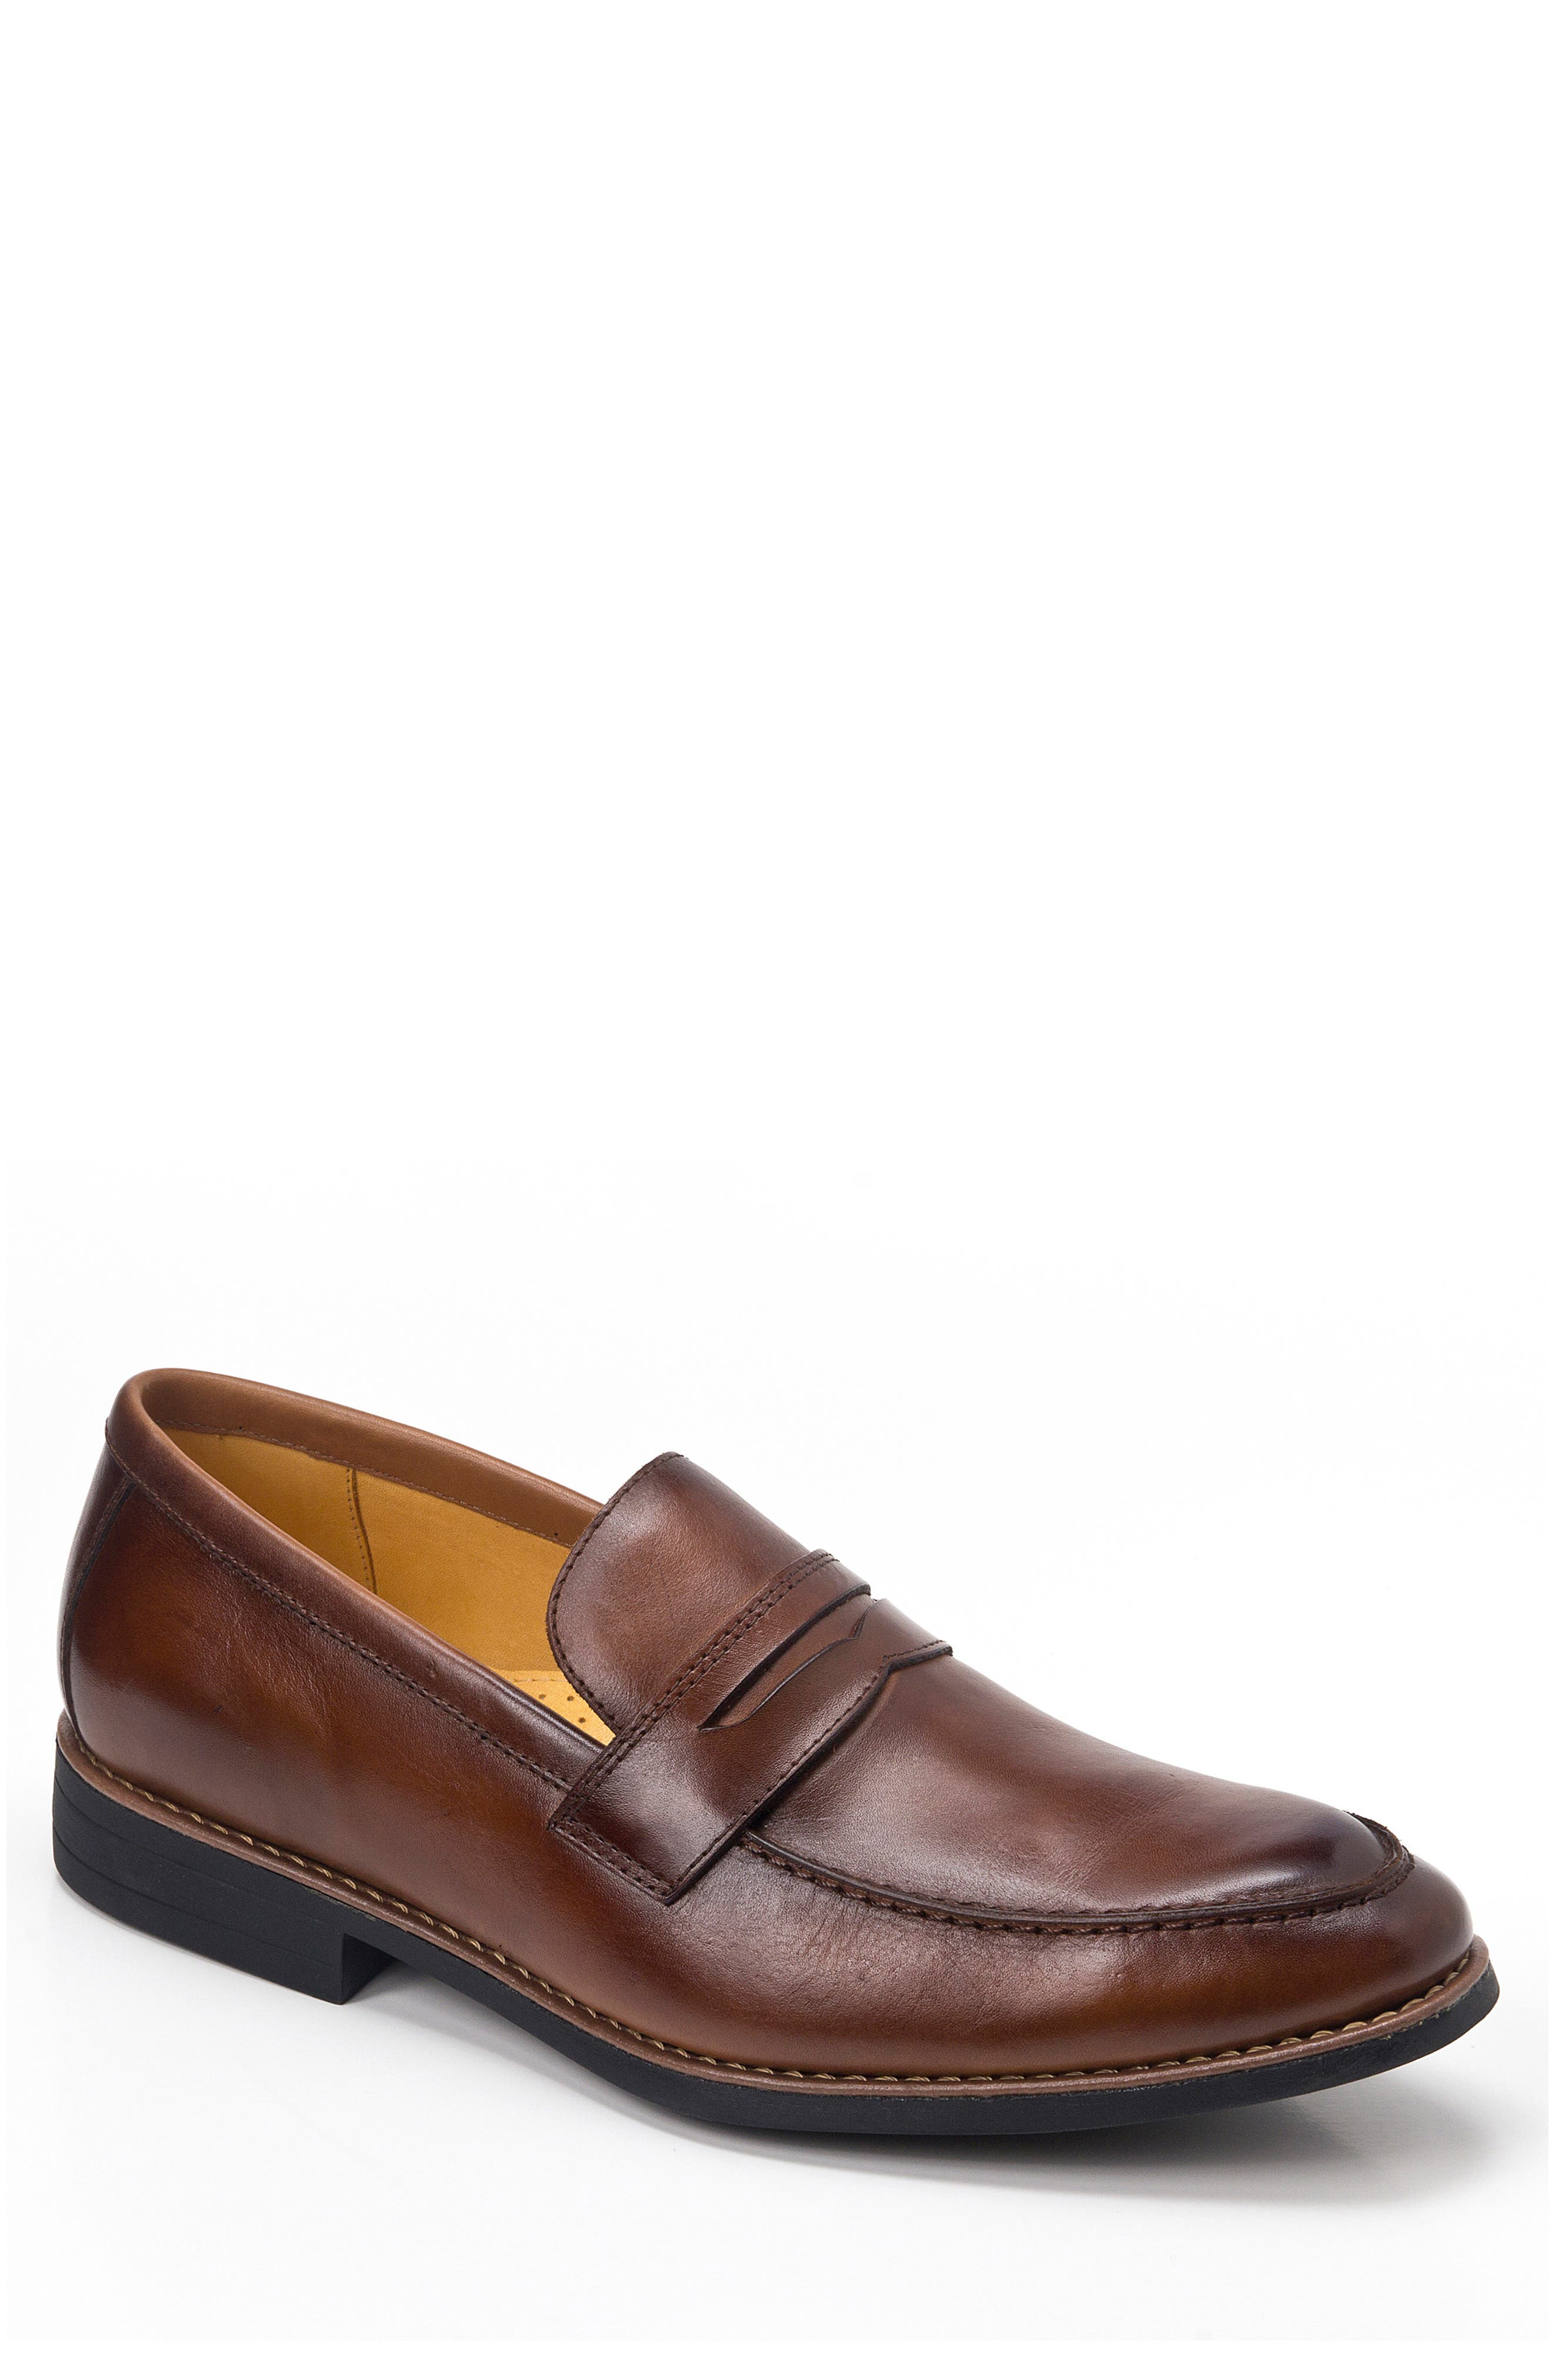 Mundo Penny Loafer, Main, color, BROWN LEATHER